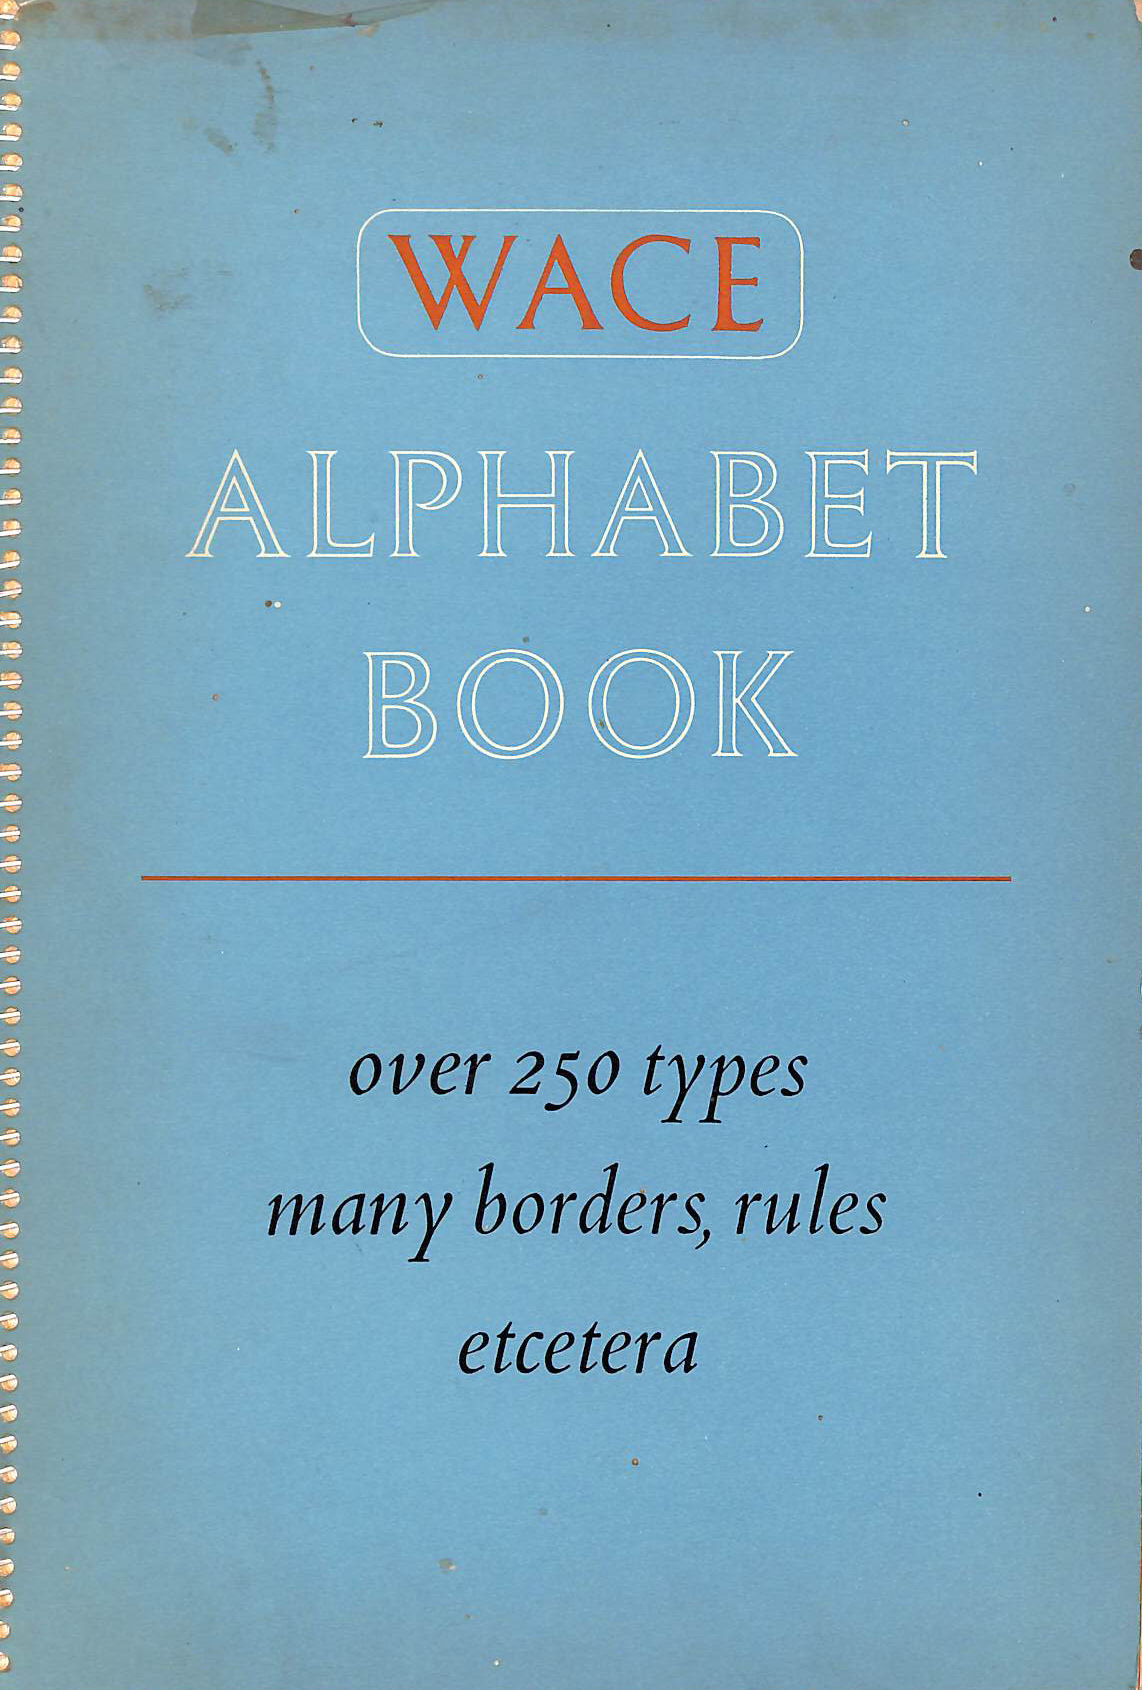 Image for WACE Alphabet Book ~ over 250 types, many borders, rules etcetera